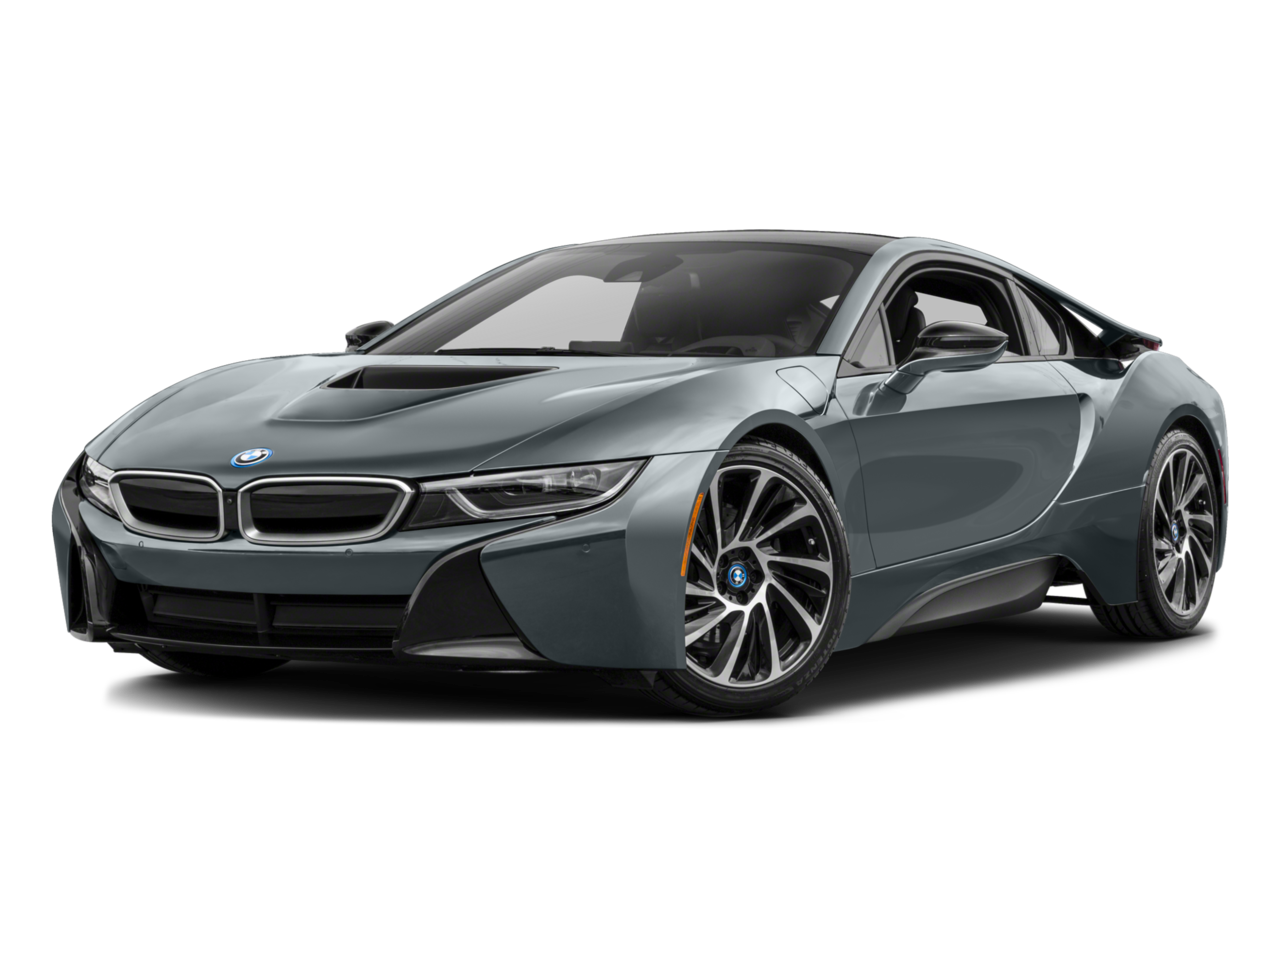 2016 BMW i8 - Huntington, NY